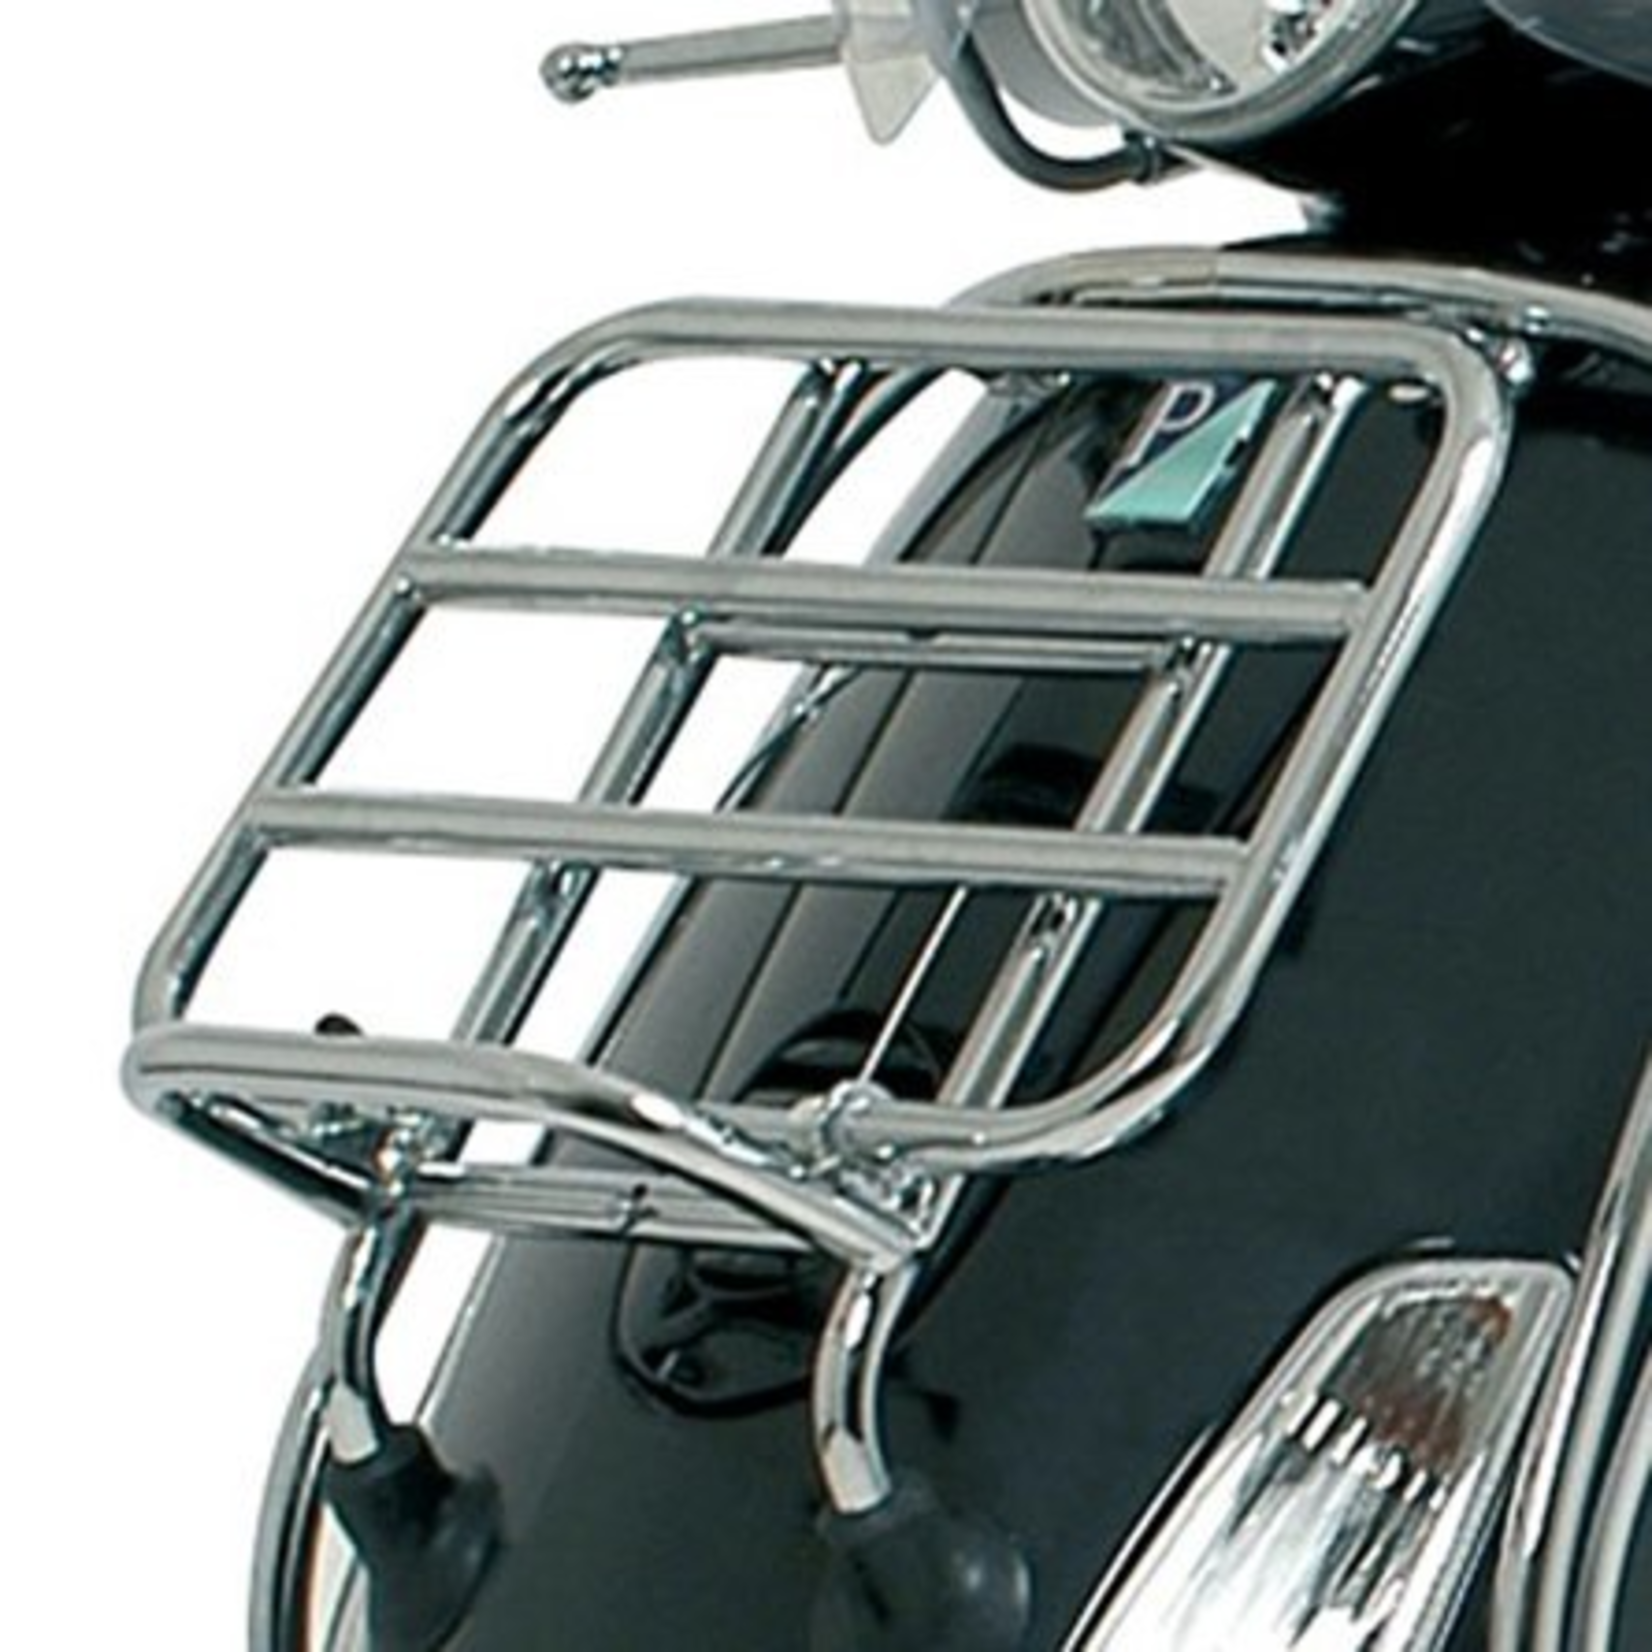 Accessories Rack, Front LX 2006-2012 (Round horn cover)